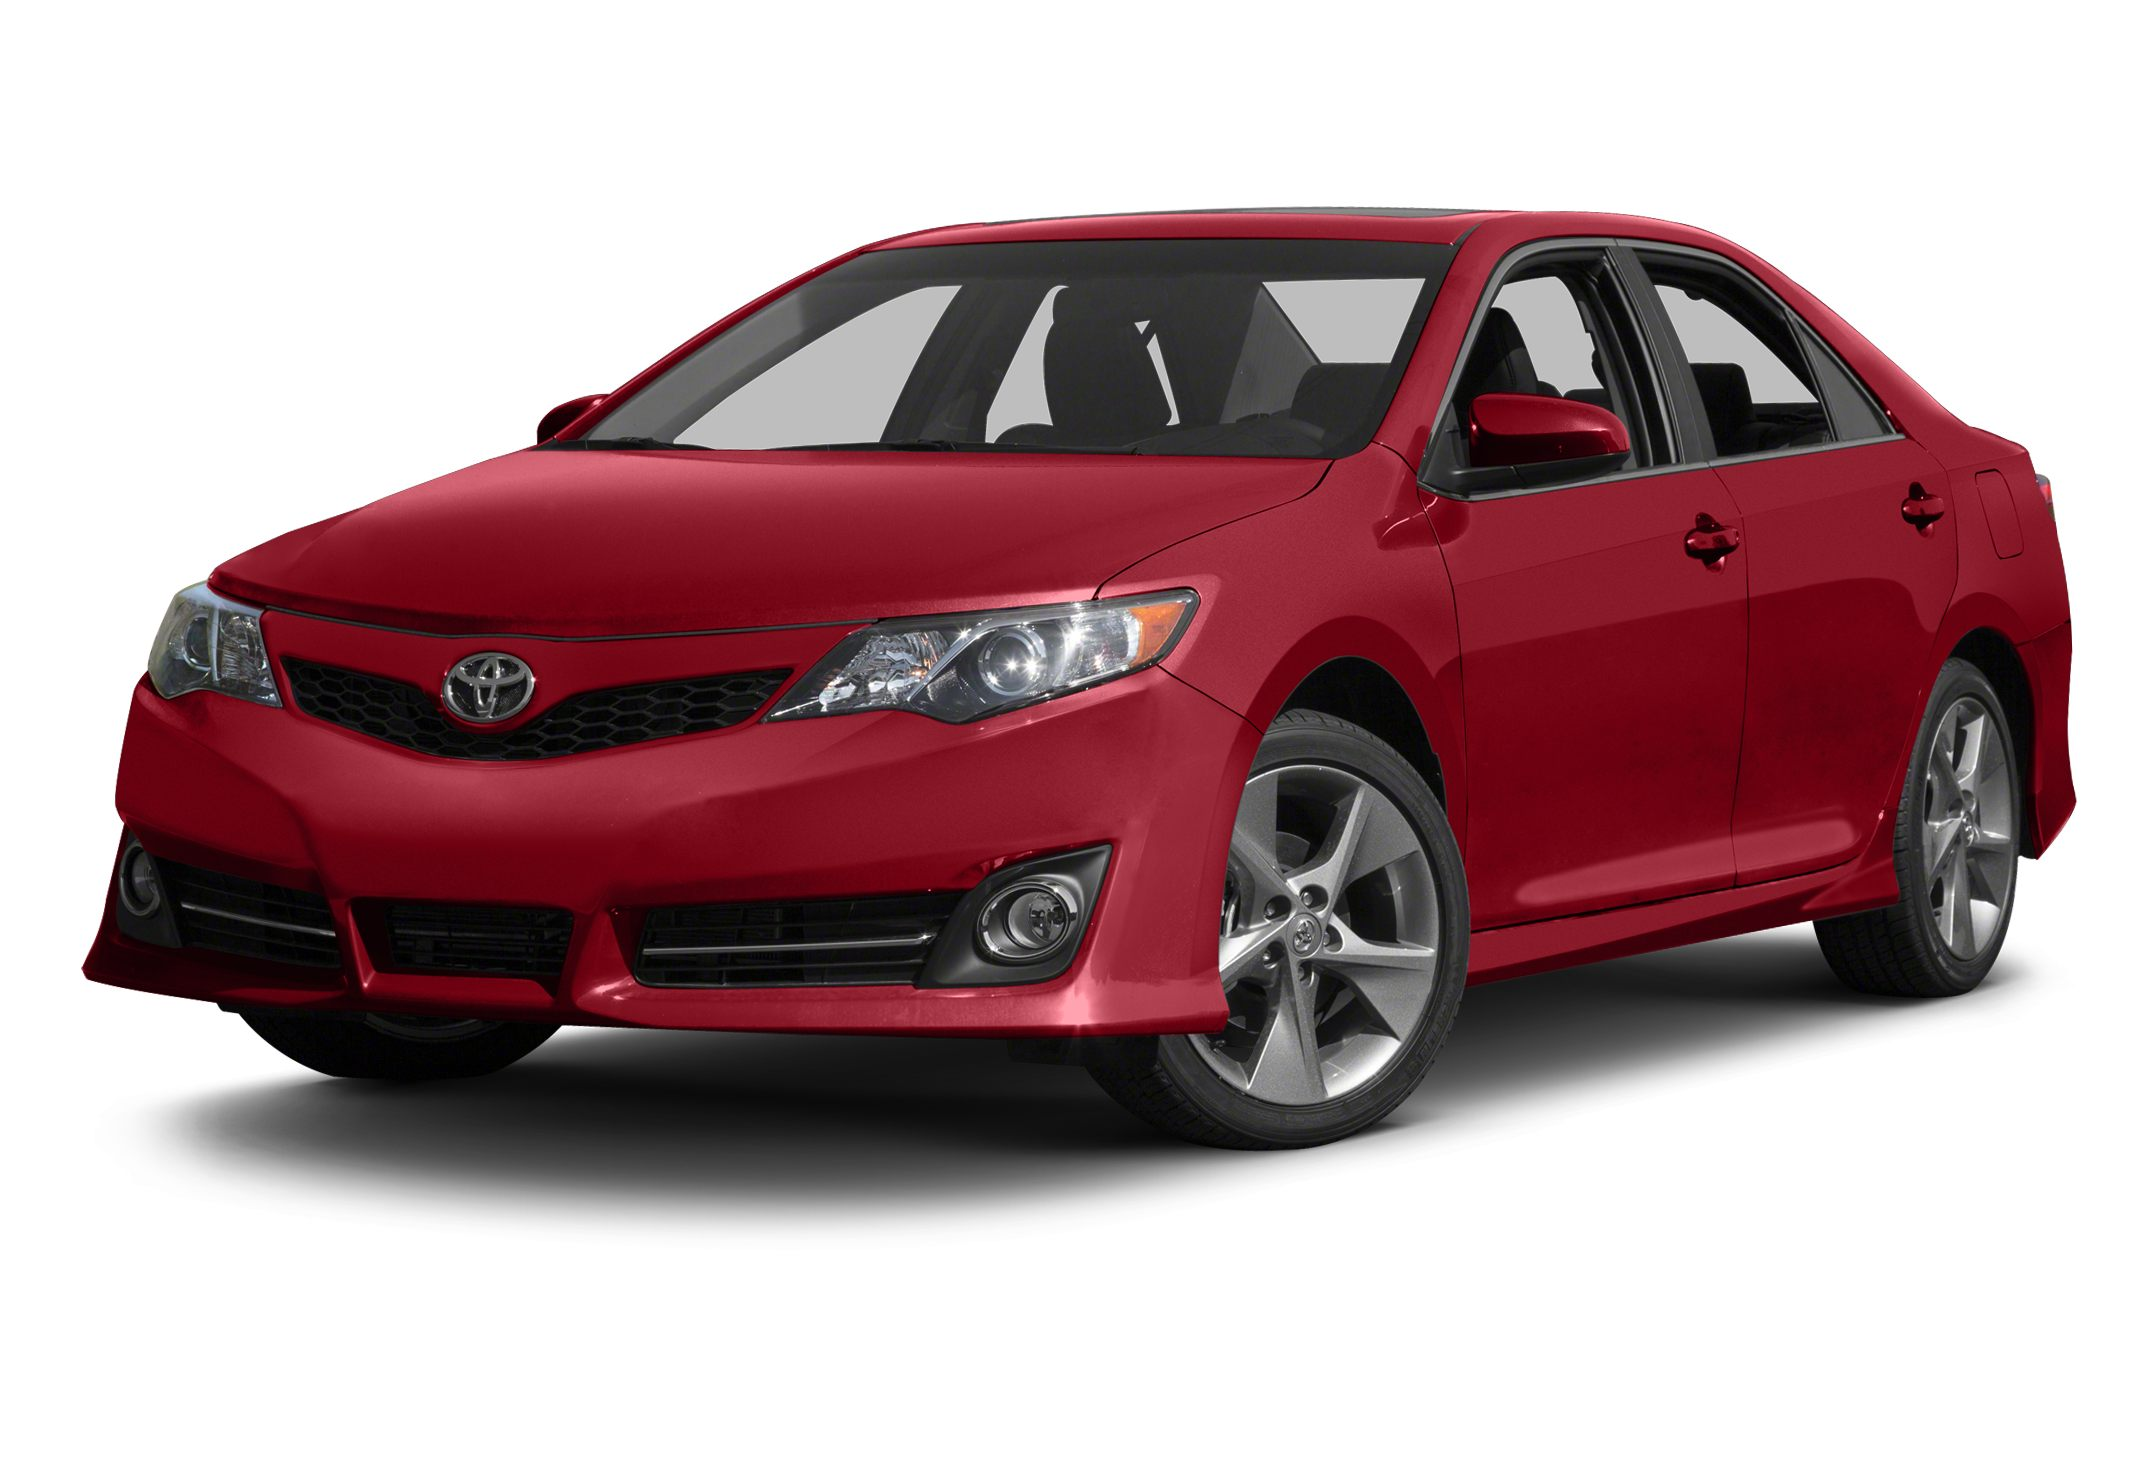 2013 Toyota Camry SE Sedan for sale in Muscatine for $22,950 with 47,448 miles.